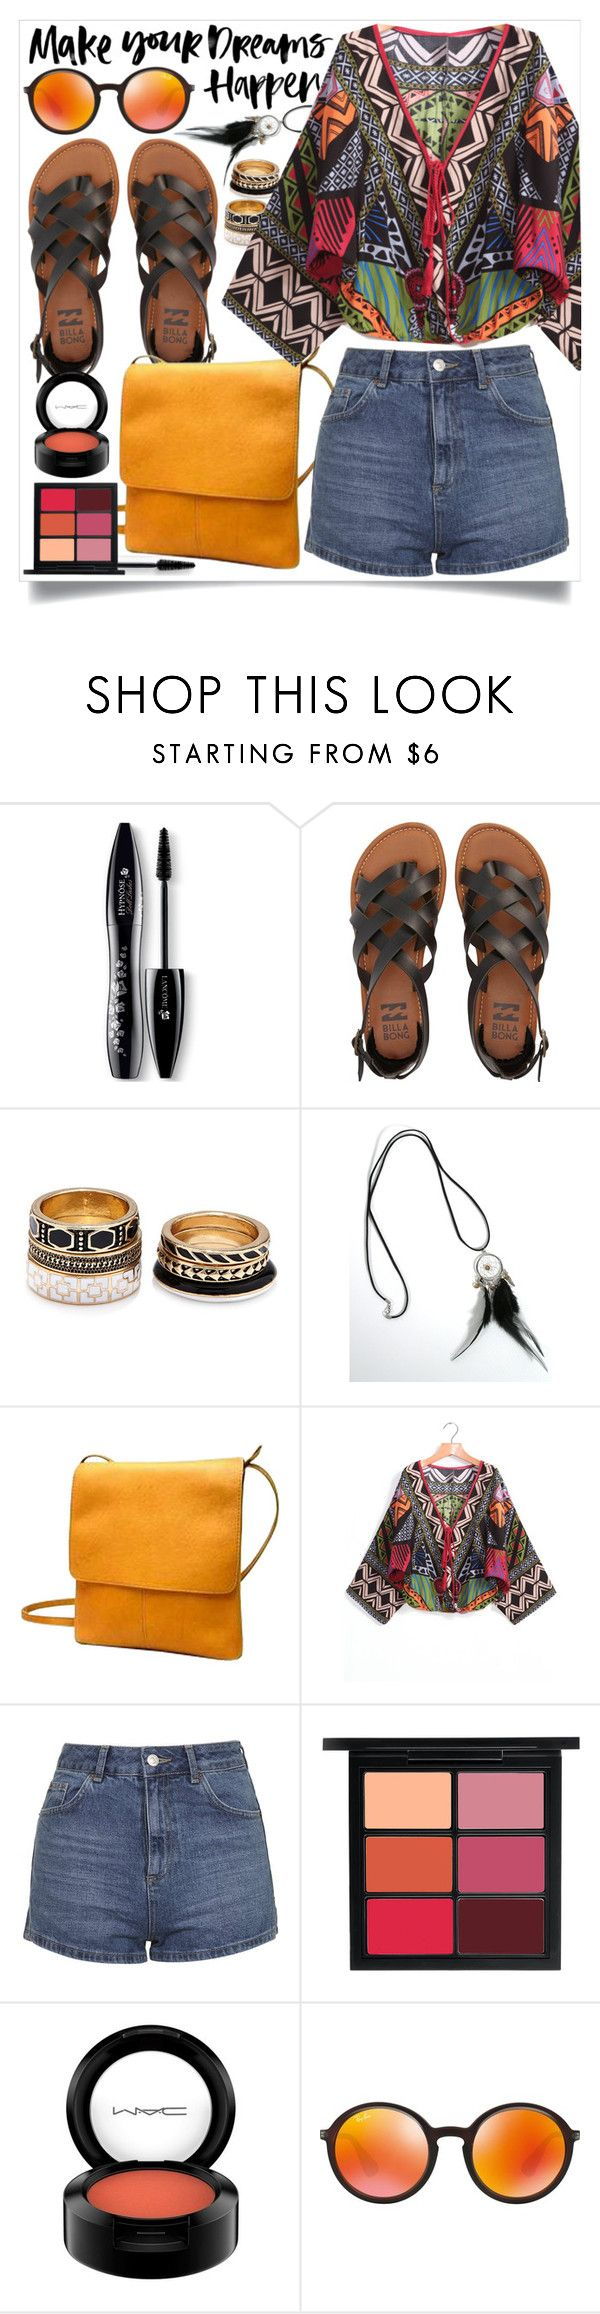 """""""make your dreams happen"""" by ailav9 ❤ liked on Polyvore featuring Lancôme, Billabong, Forever 21, Le Donne, Topshop, MAC Cosmetics and Ray-Ban"""